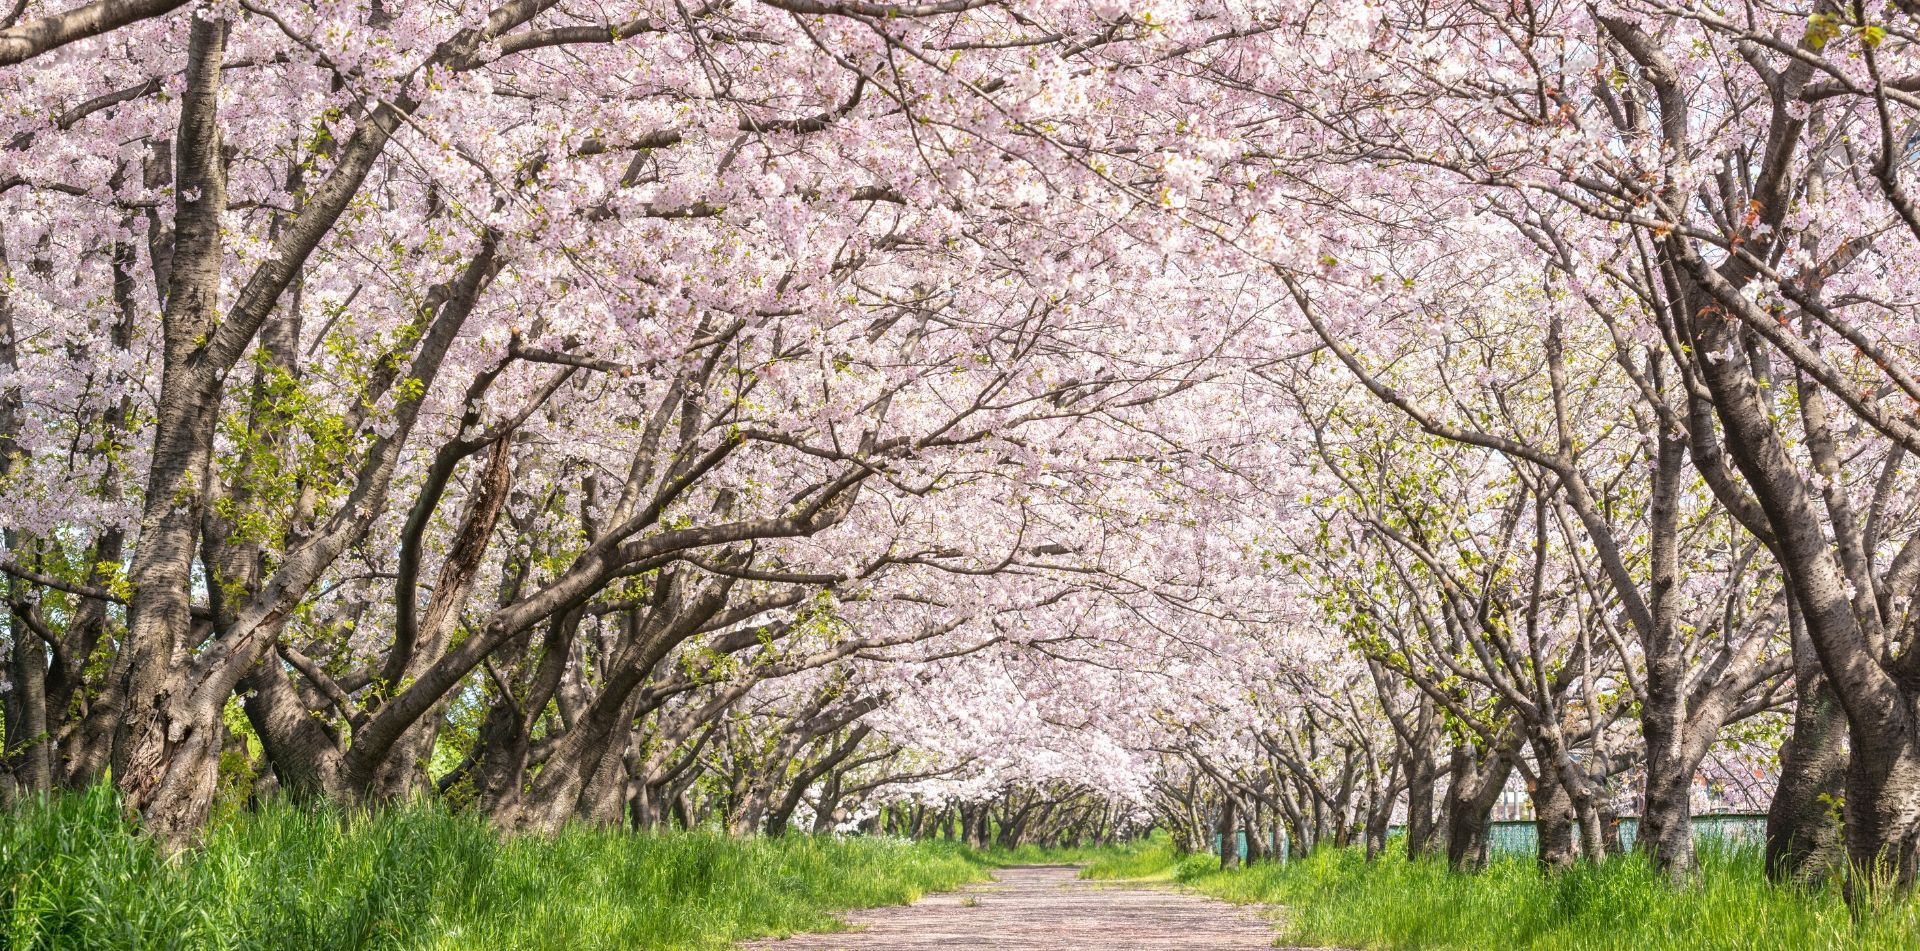 Asia Japan Ueno Park road lined with Cherry Blossom flowers - luxury vacation destinations